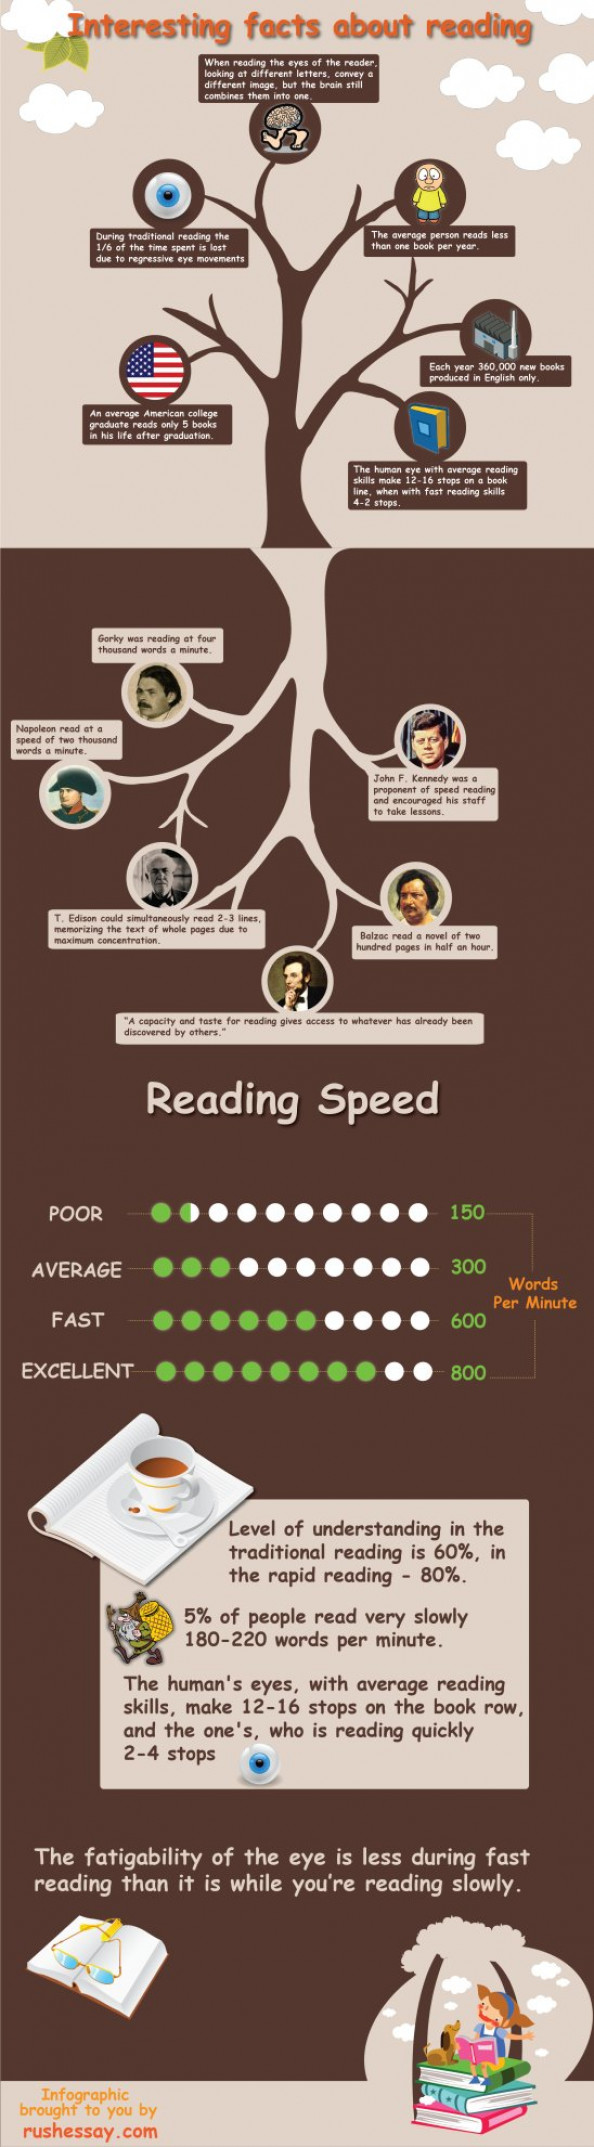 Interesting facts about reading Infographic